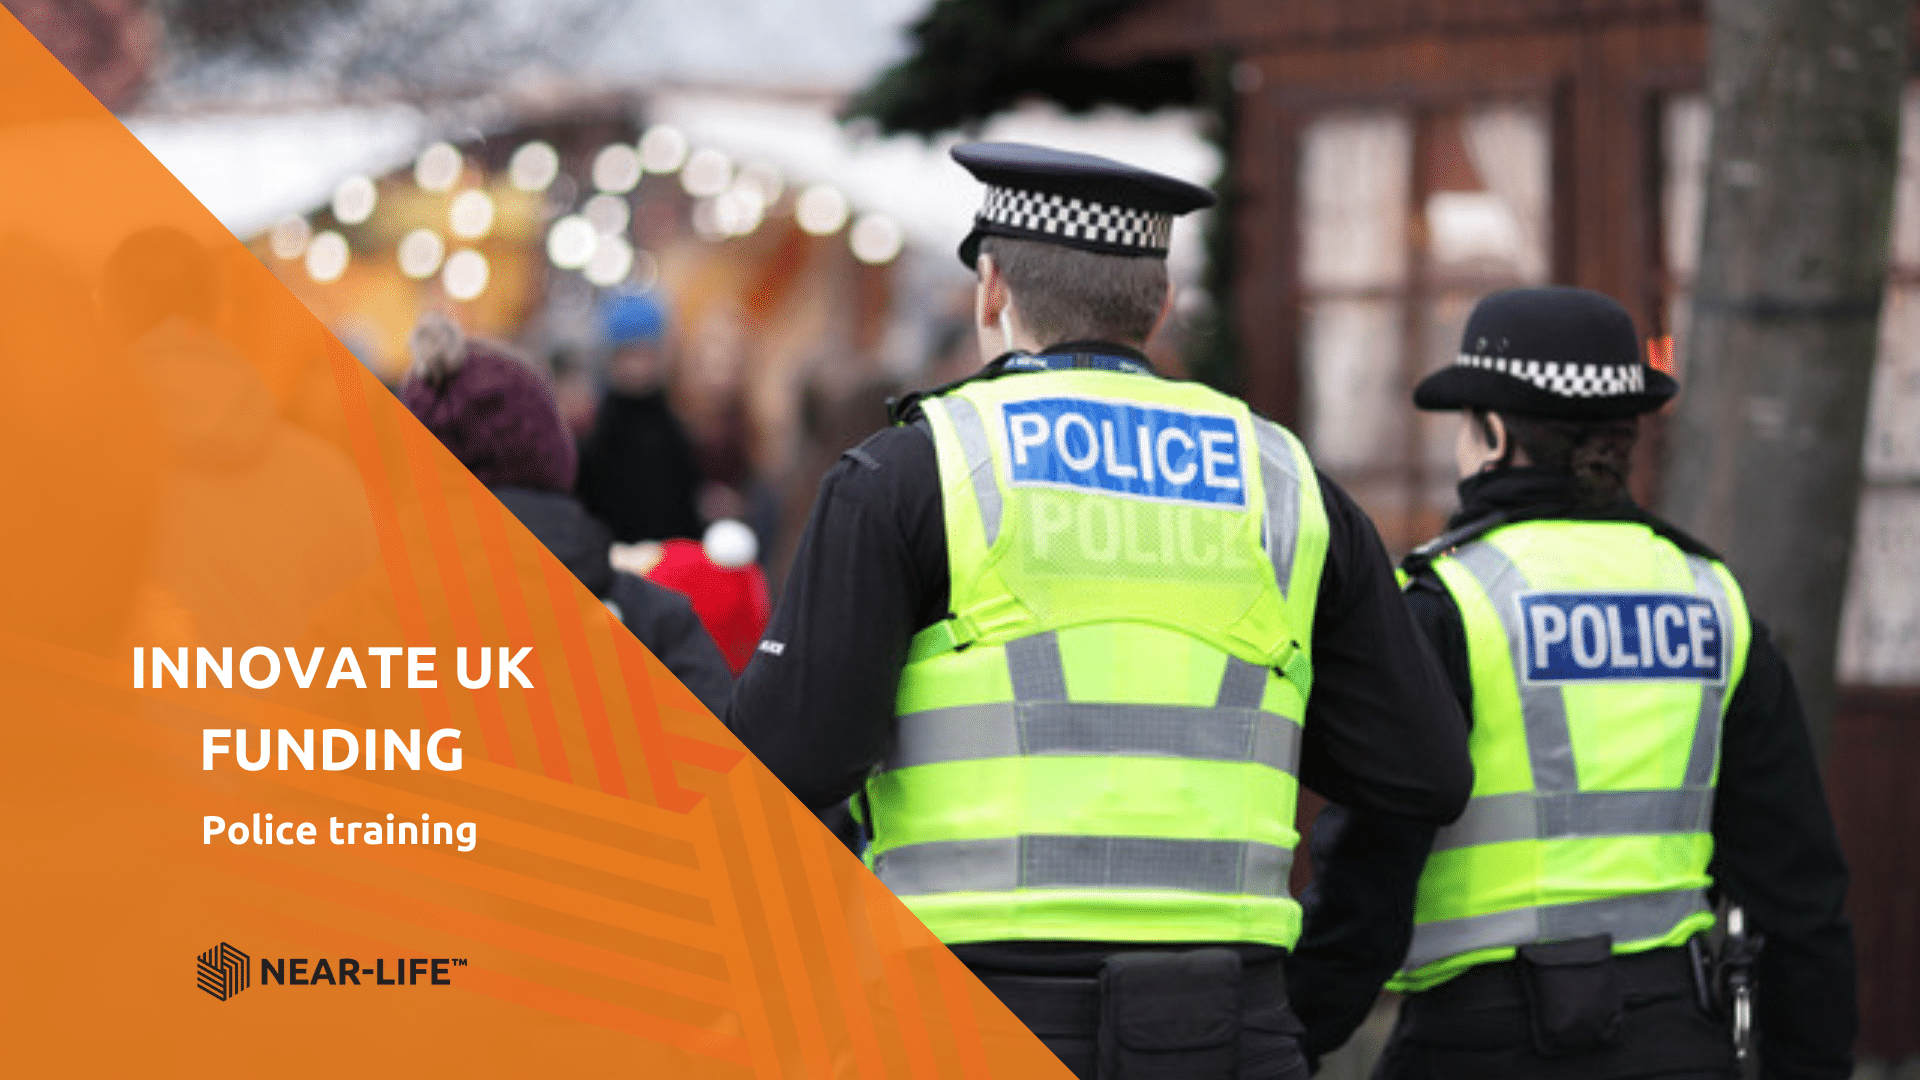 Police in a crowd, with text: Innovate UK funding, police training, Near-Life